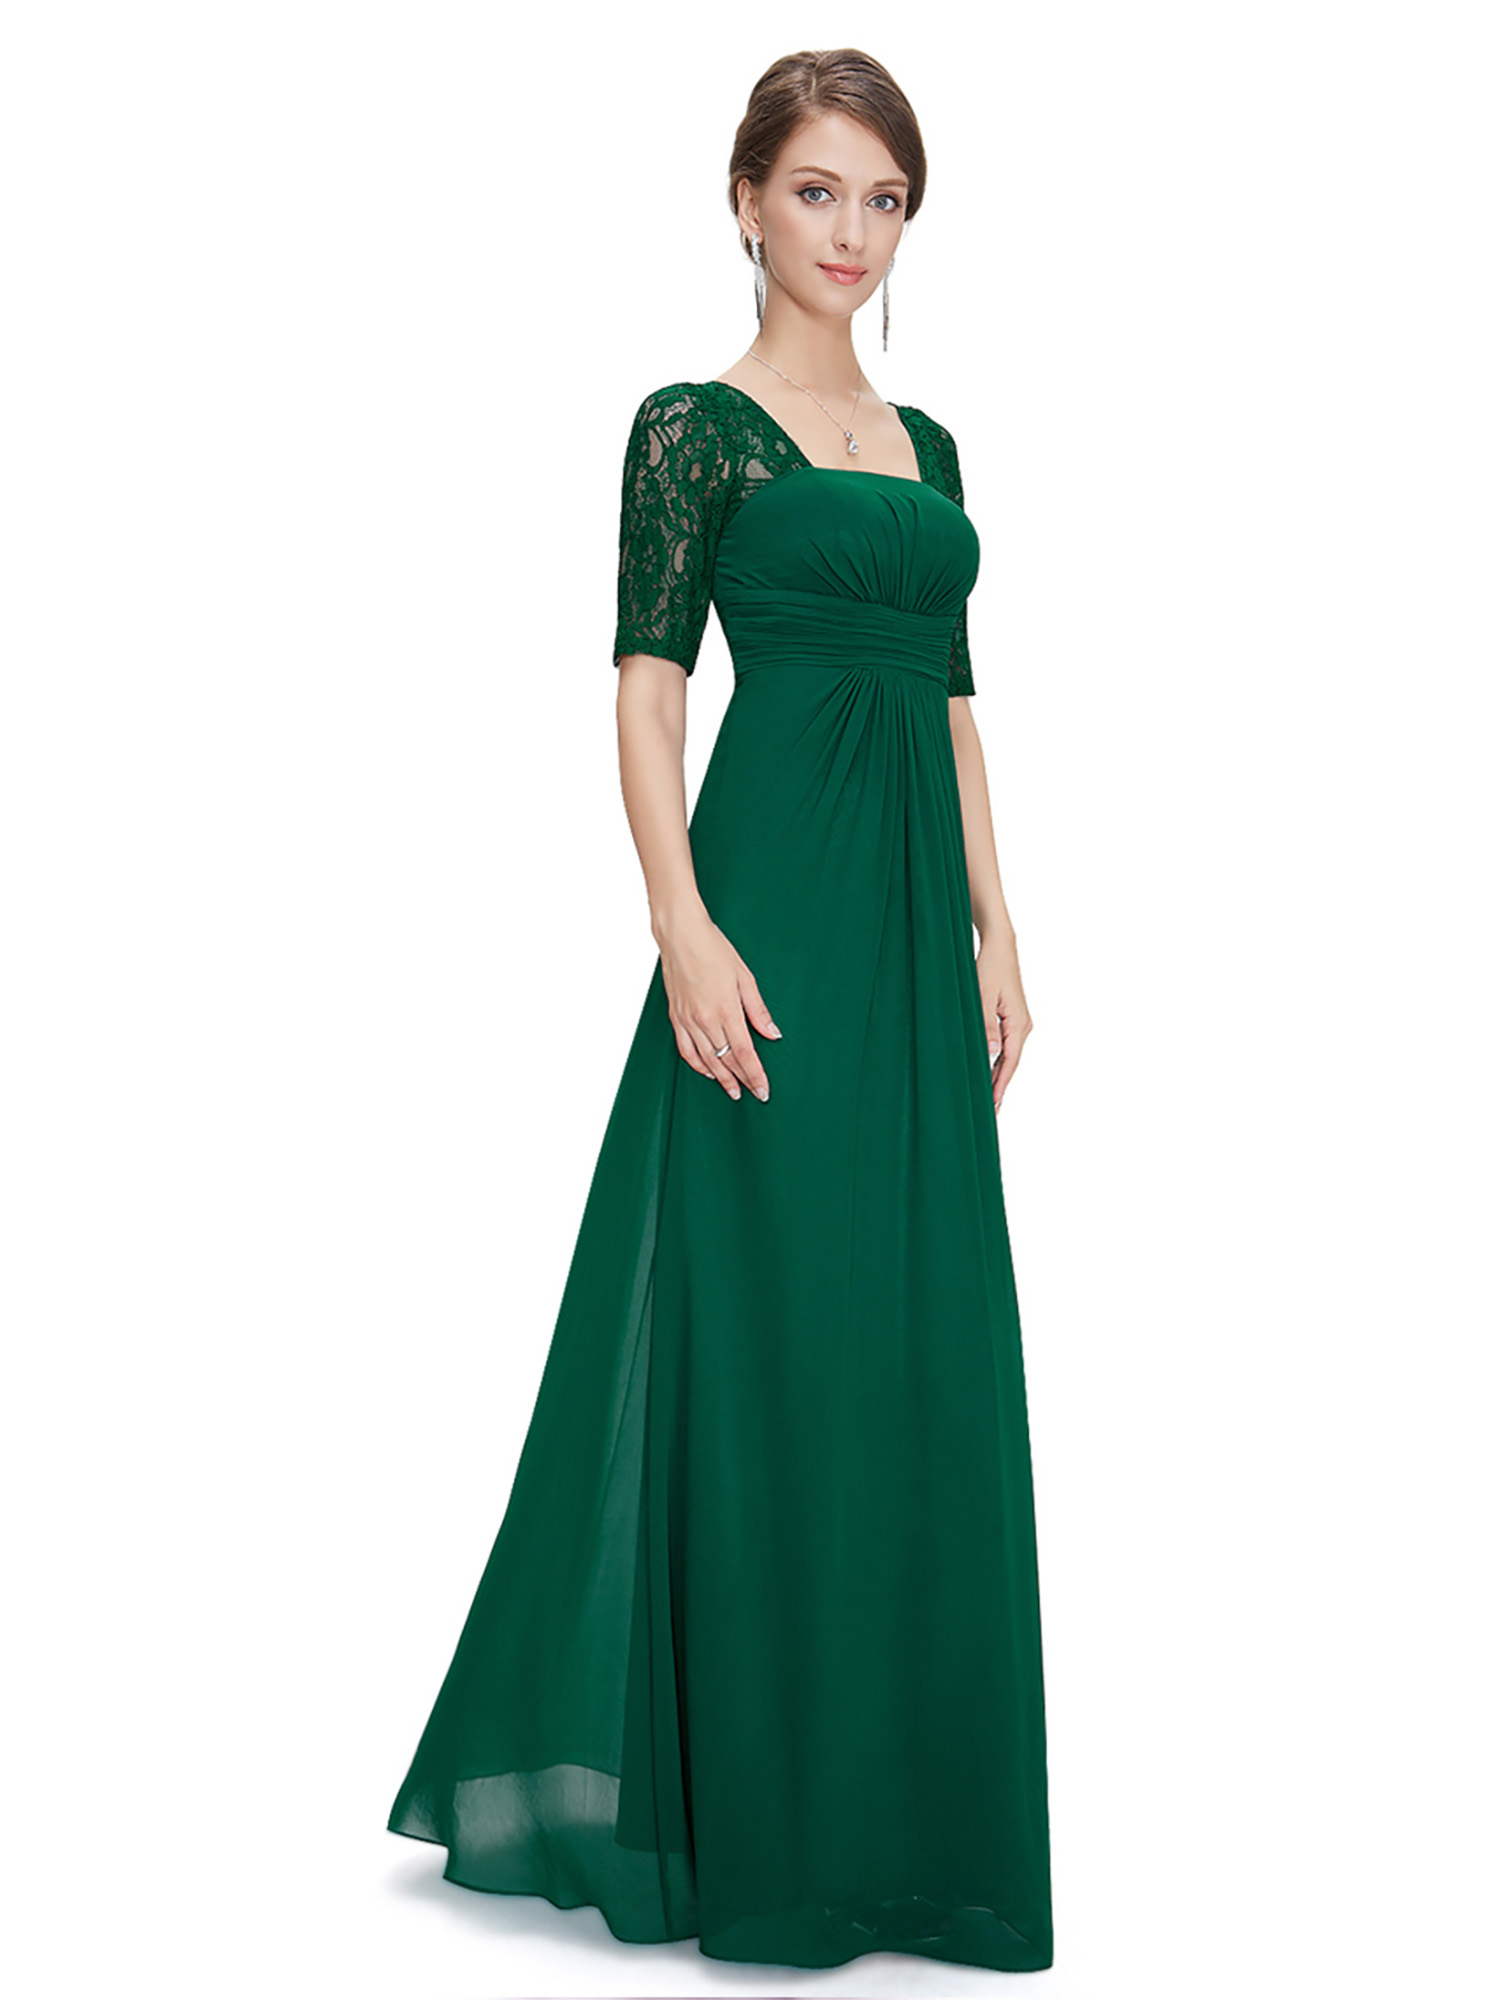 Ever pretty formal long evening lace gown party prom bridesmaid picture 13 of 16 ombrellifo Choice Image